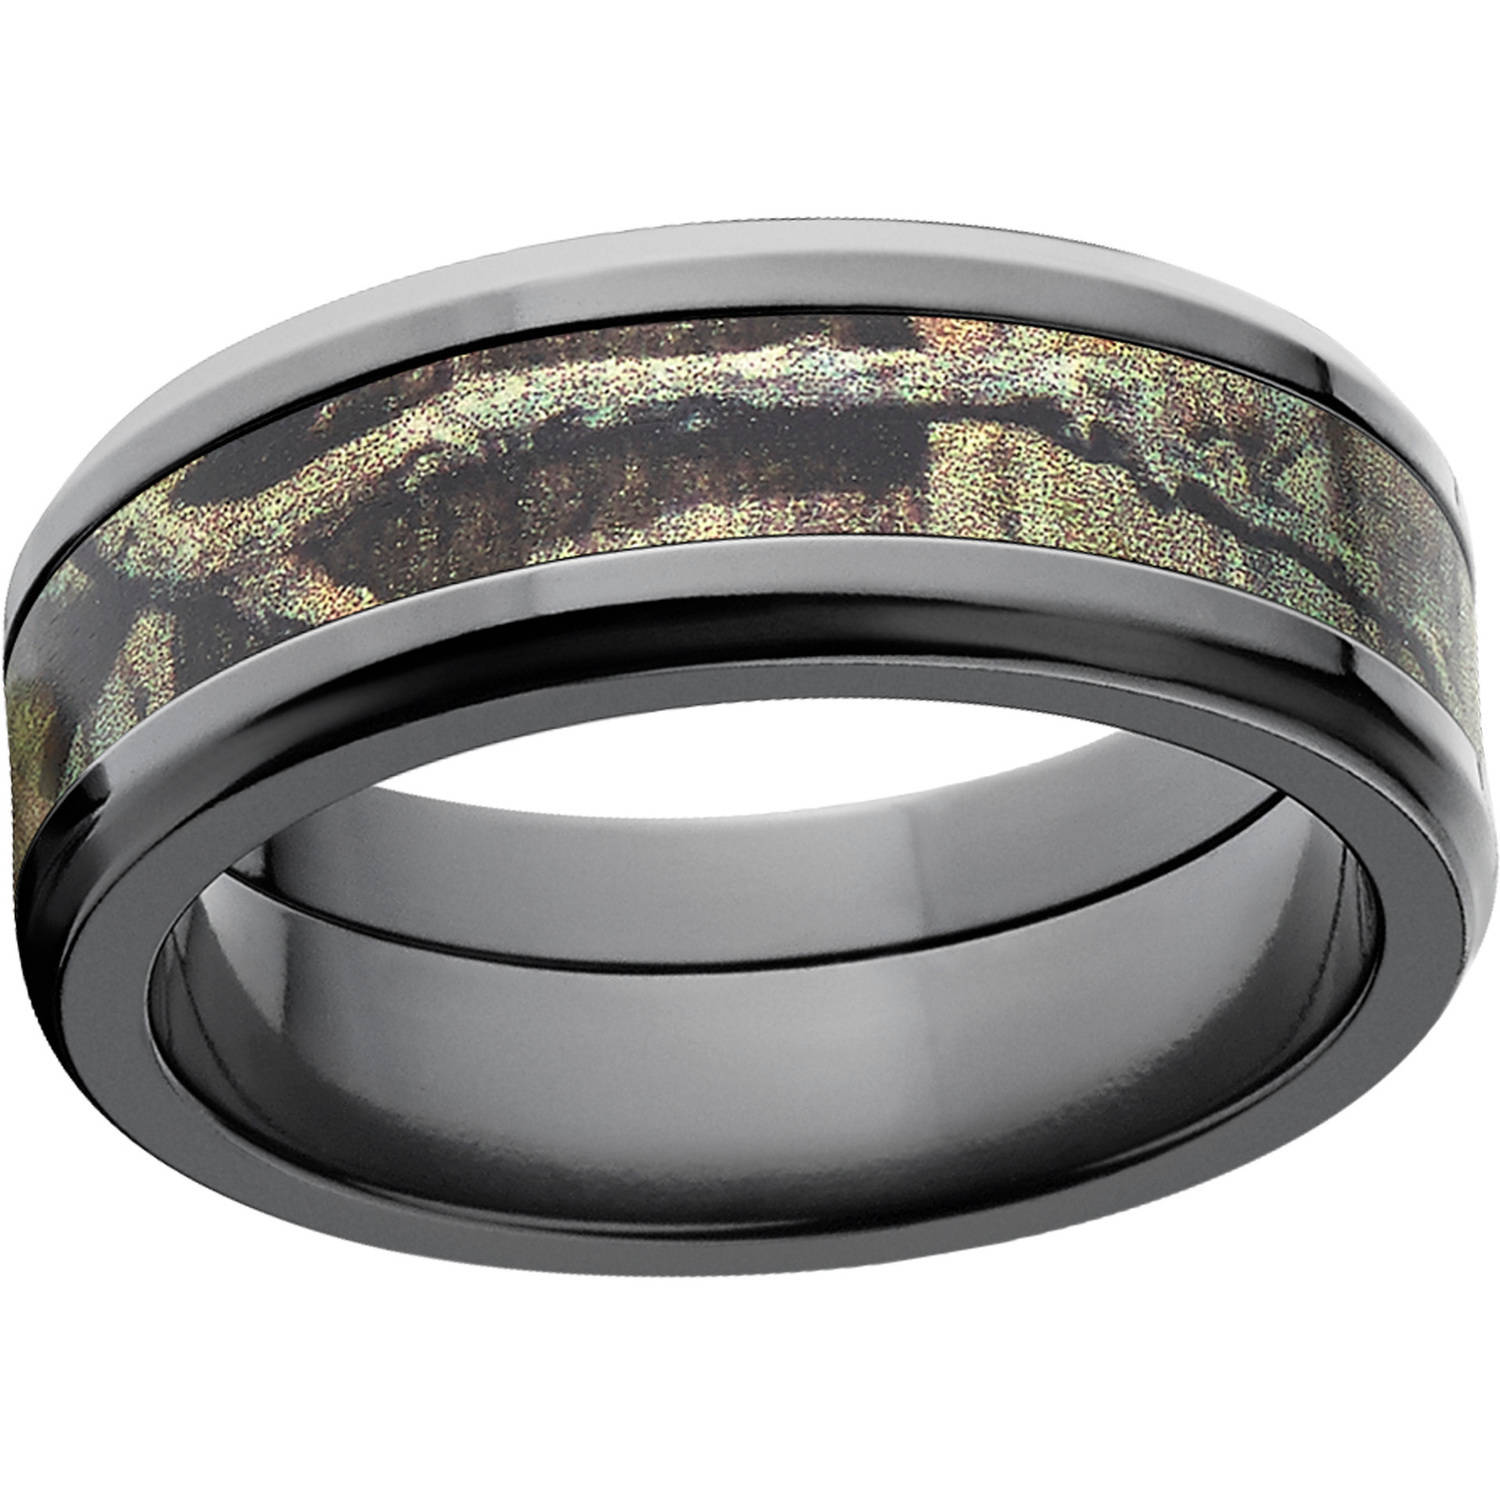 Mossy Oak Break Up Infinity Men's Camo 8mm Black Zirconium Band with Polished Edges and Deluxe Comfort Fit